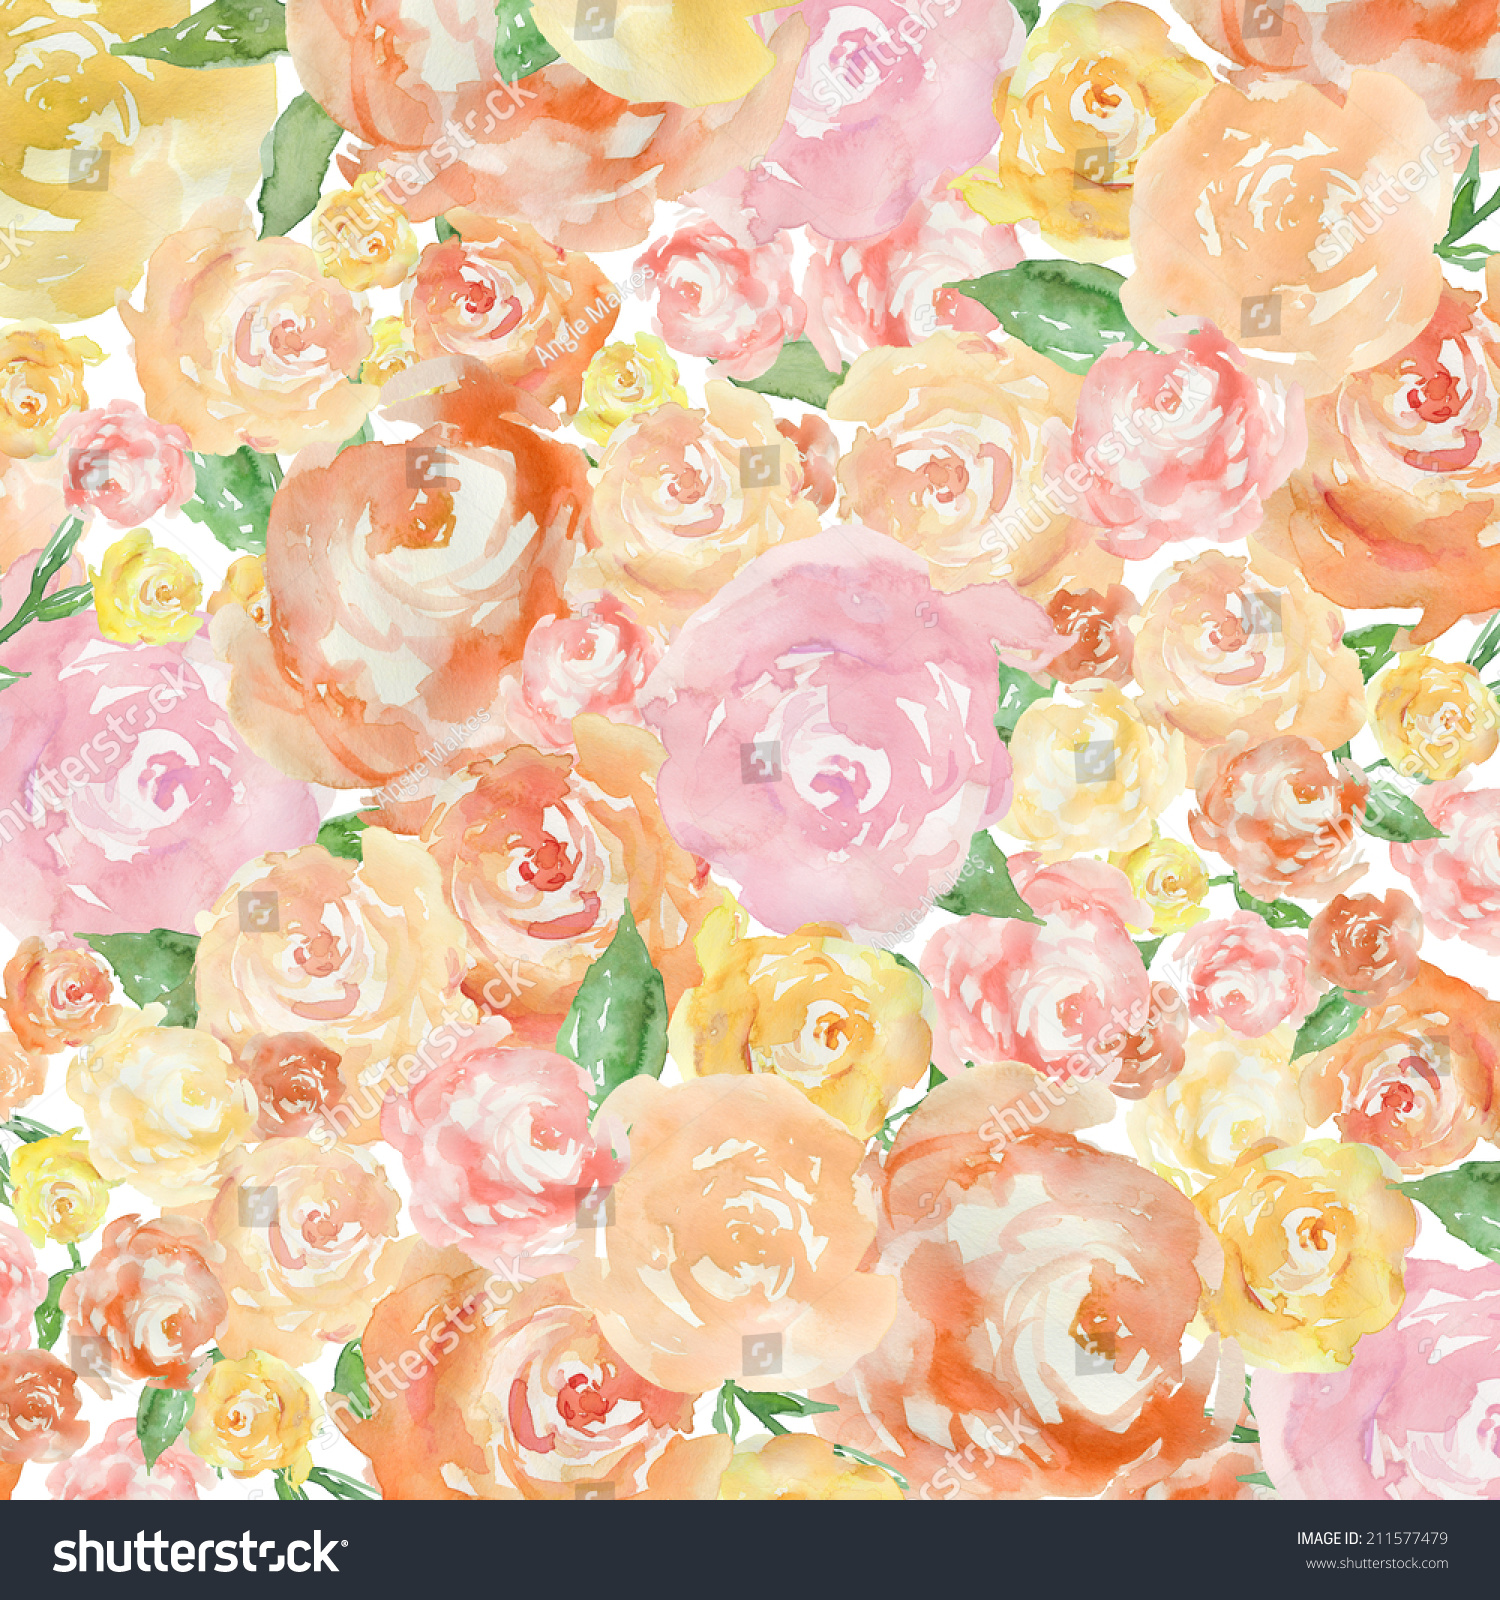 Bright Spring Floral Background Abstract Watercolor Stock ...